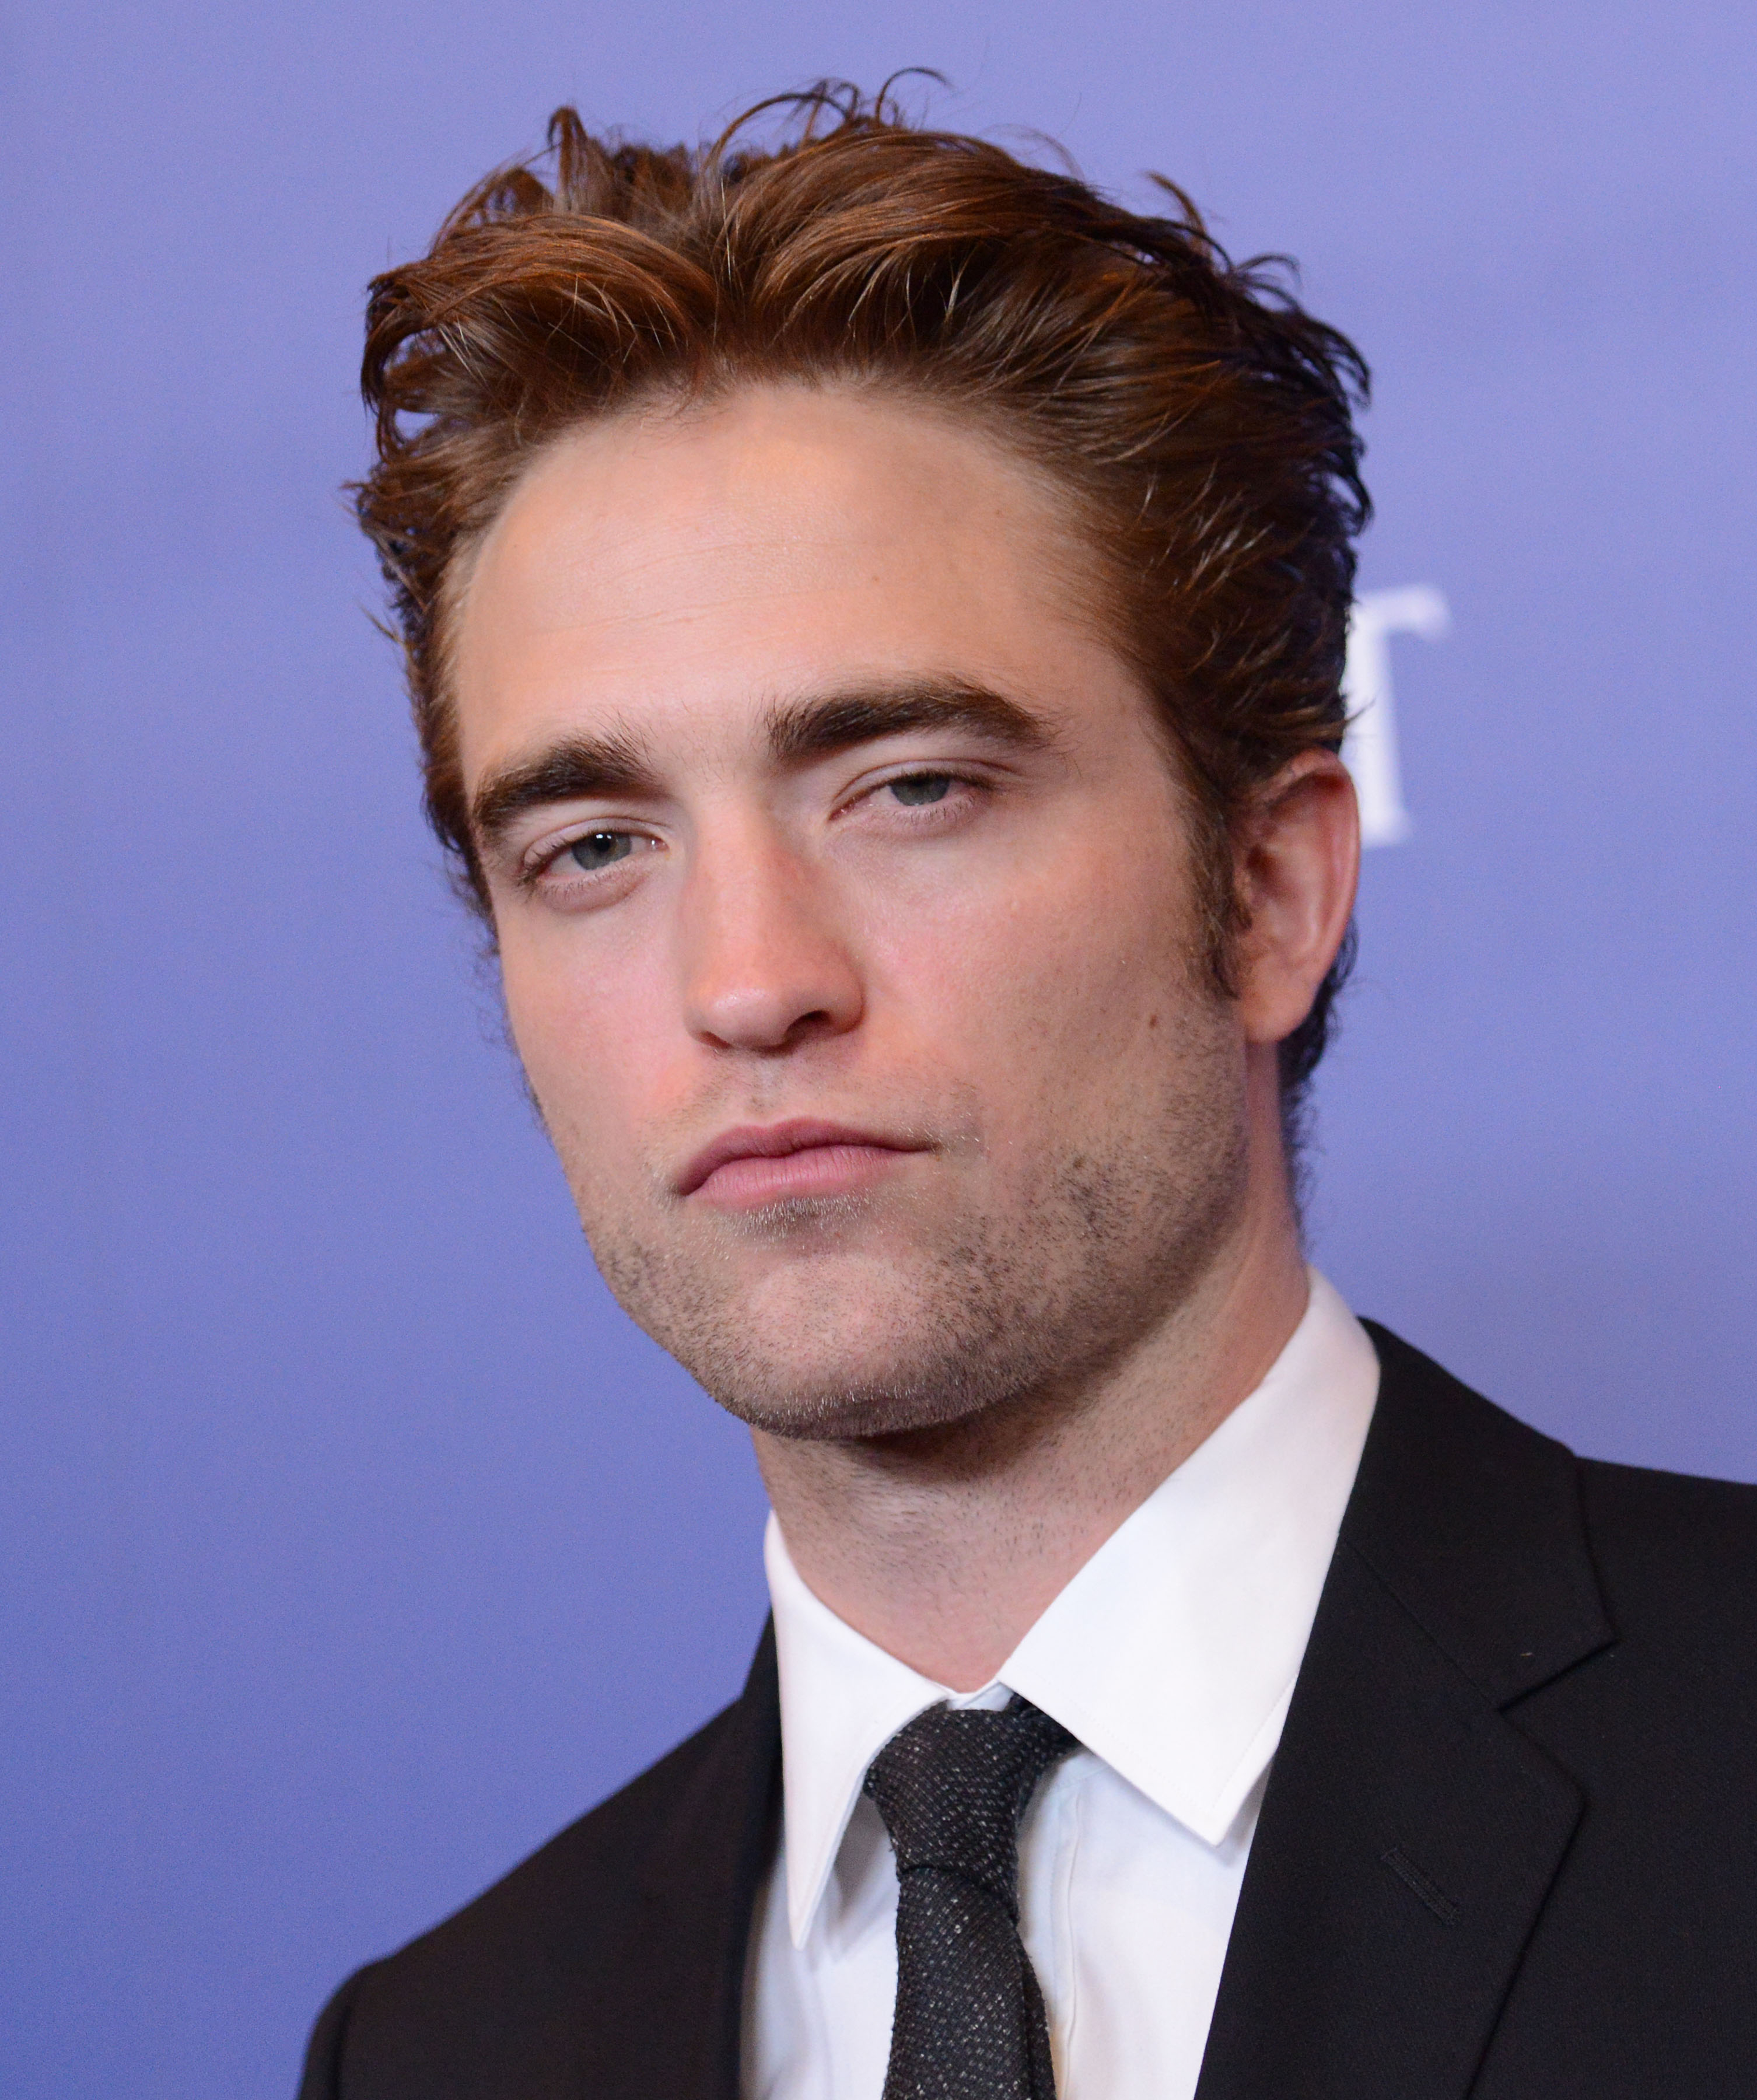 Robert Pattinson confirmado no The Hollywood Film Awards dia 14 de Novembro